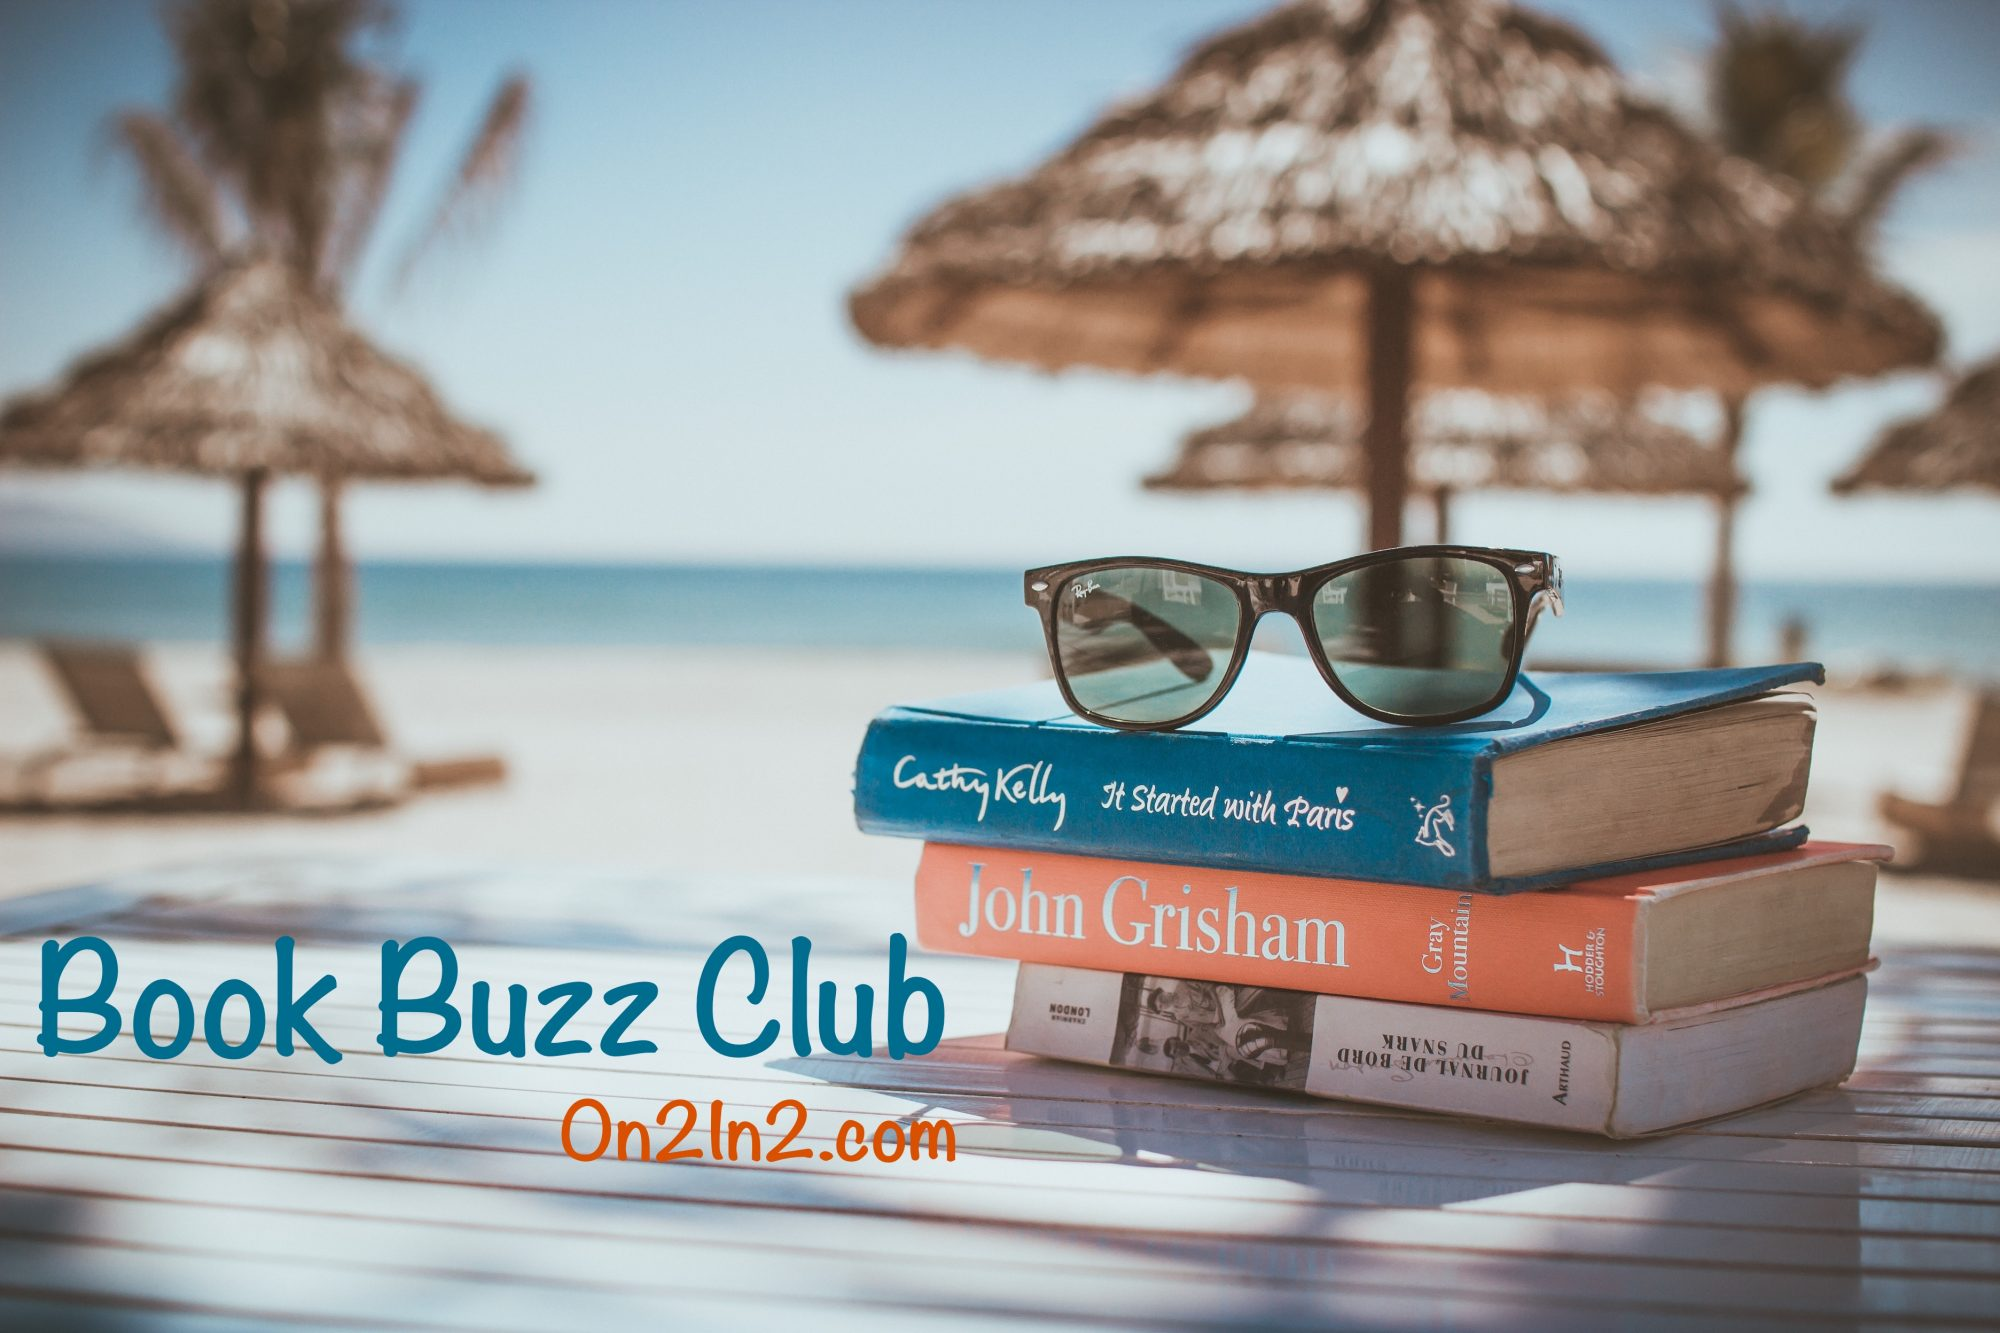 At the Book Buzz Club On2In2™, book lovers share their favorite reads and exchange thoughts and ideas about the next book to read.